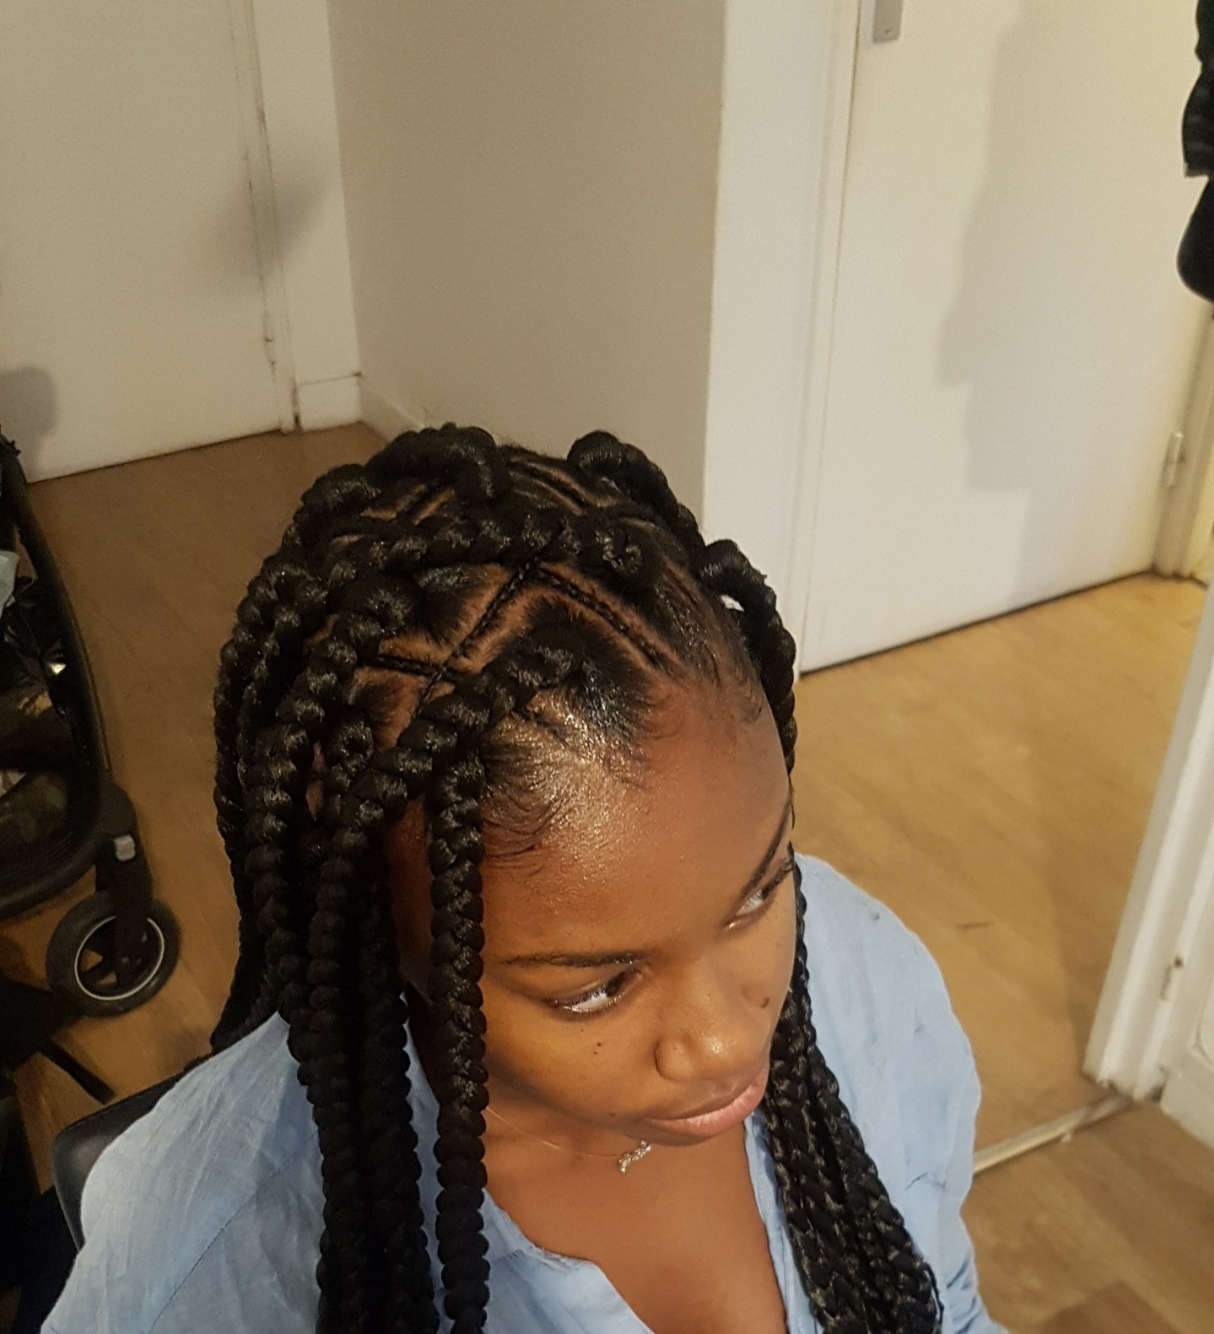 salon de coiffure afro tresse tresses box braids crochet braids vanilles tissages paris 75 77 78 91 92 93 94 95 LYFVFNKO